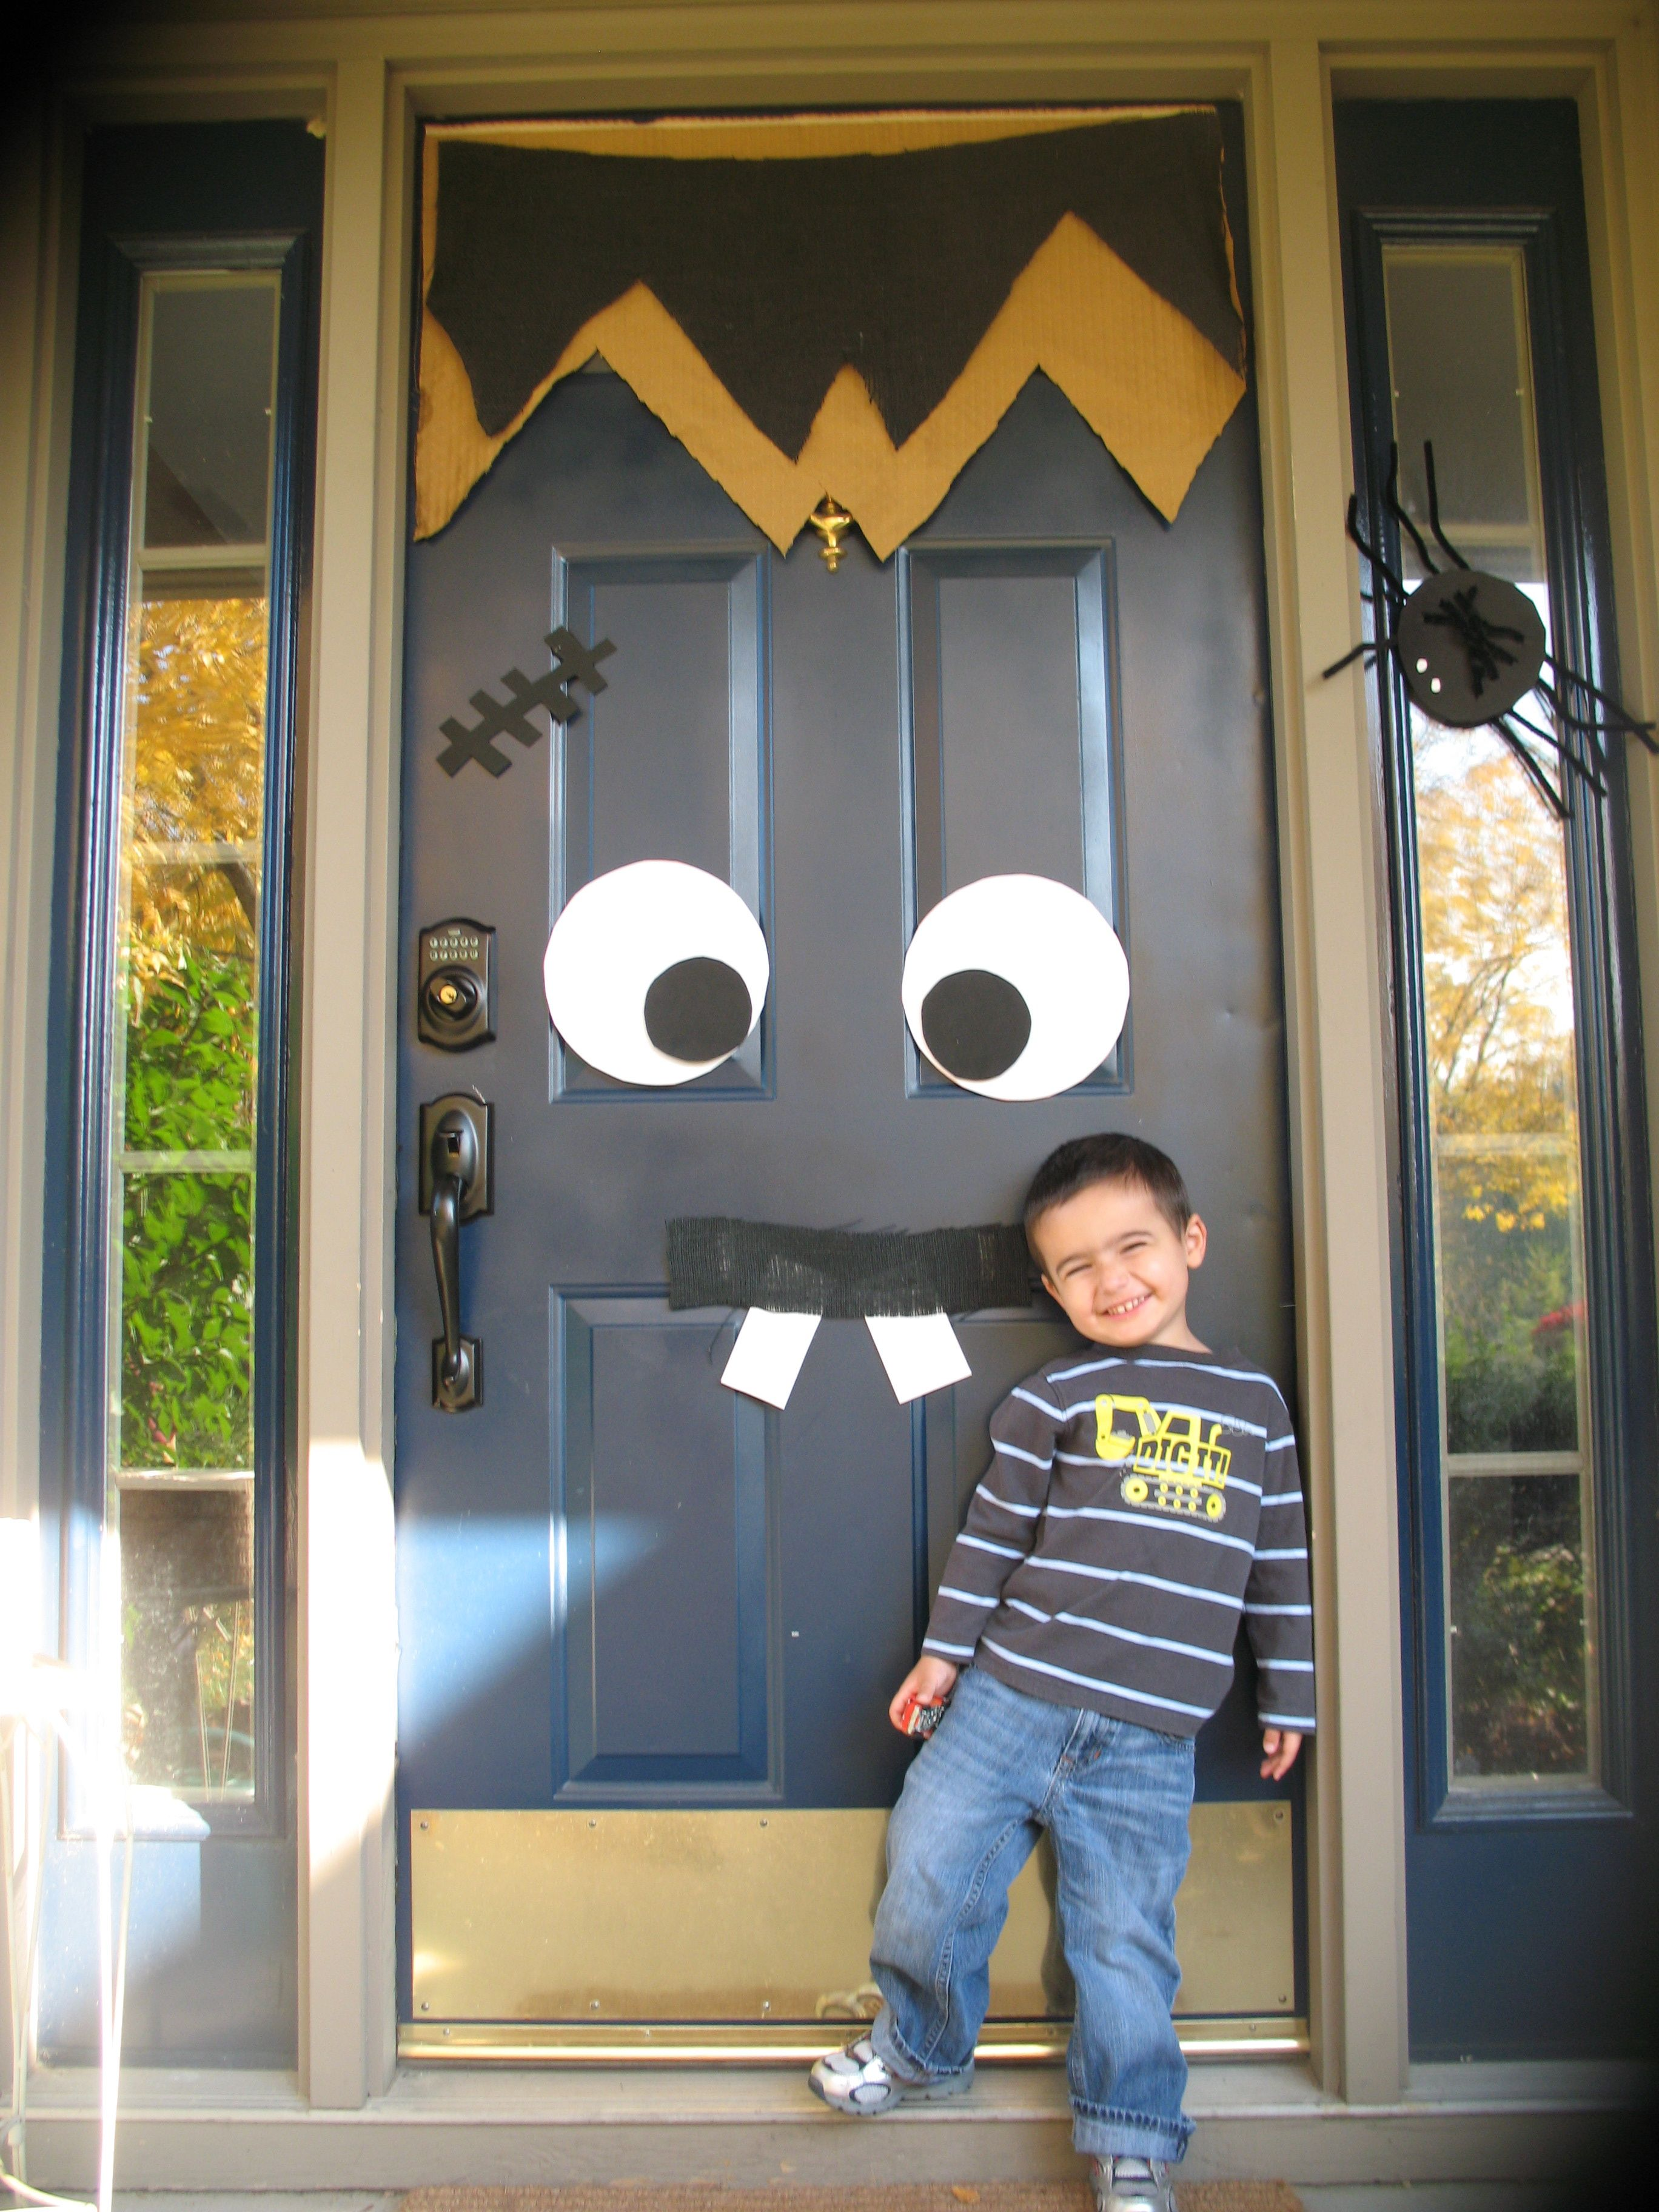 Thanks to Pintrest for a great Halloween door idea!